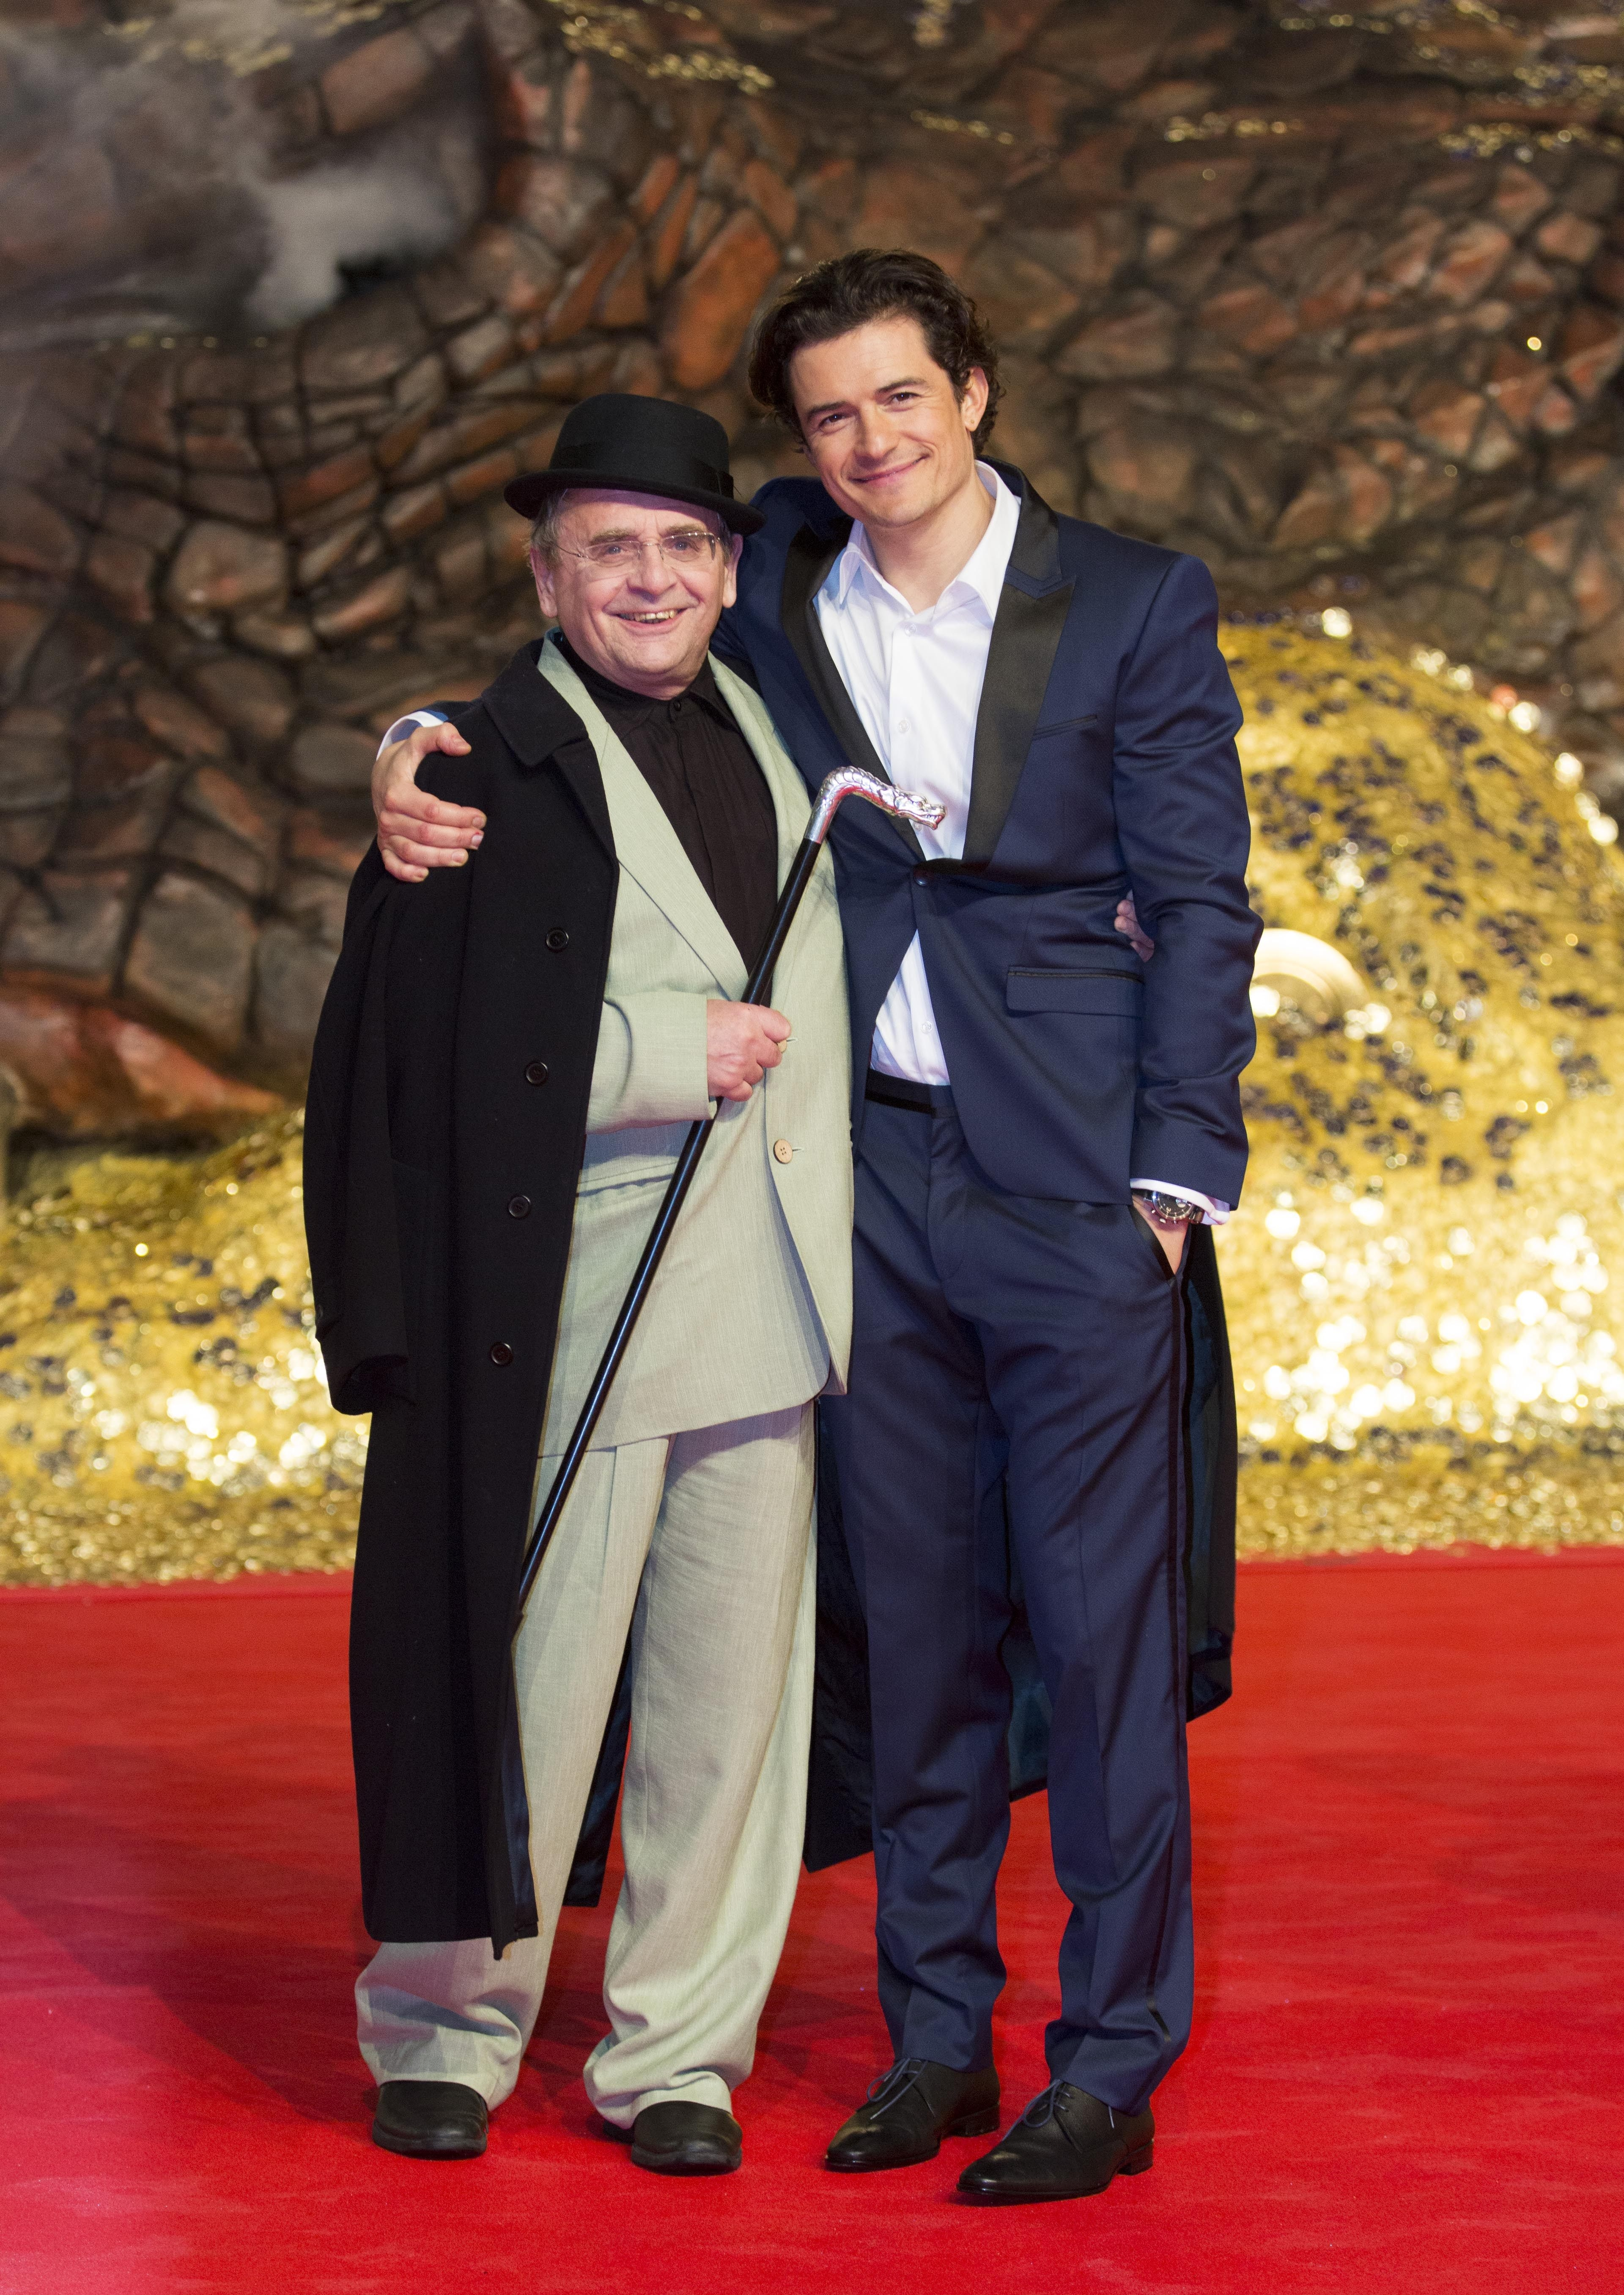 """""""Hobbit"""" happening: British actors Sylvester McCoy, left, and Orlando Bloom arrive for the European premiere of the movie """"The Hobbit: The Desolation of Smaug"""" in Berlin on Monday."""